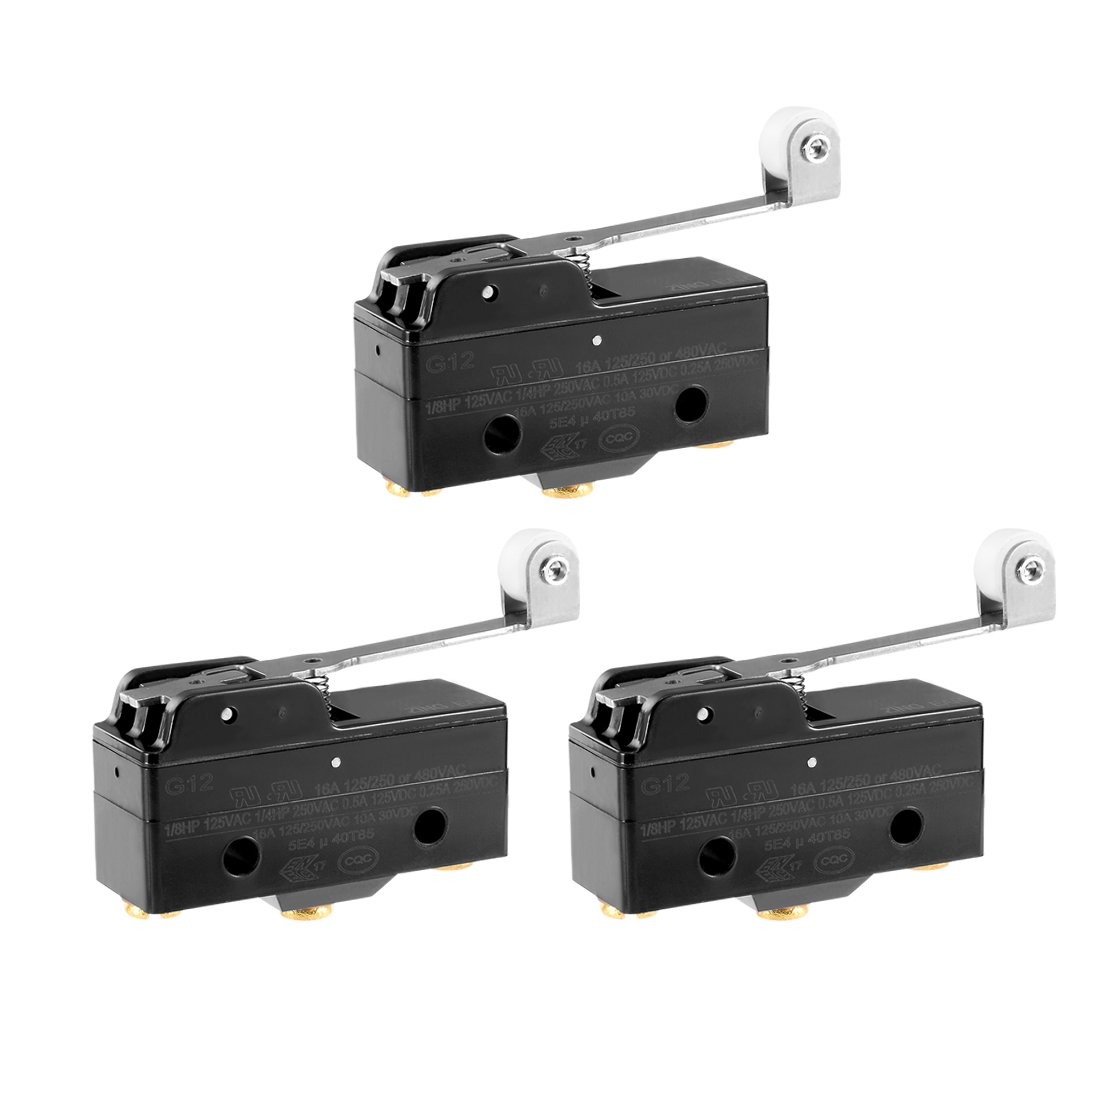 uxcell 3pcs G1216-1RW3 Screw Terminals Long Hinge Roller Lever Micro Limit Switch 380VAC 15A